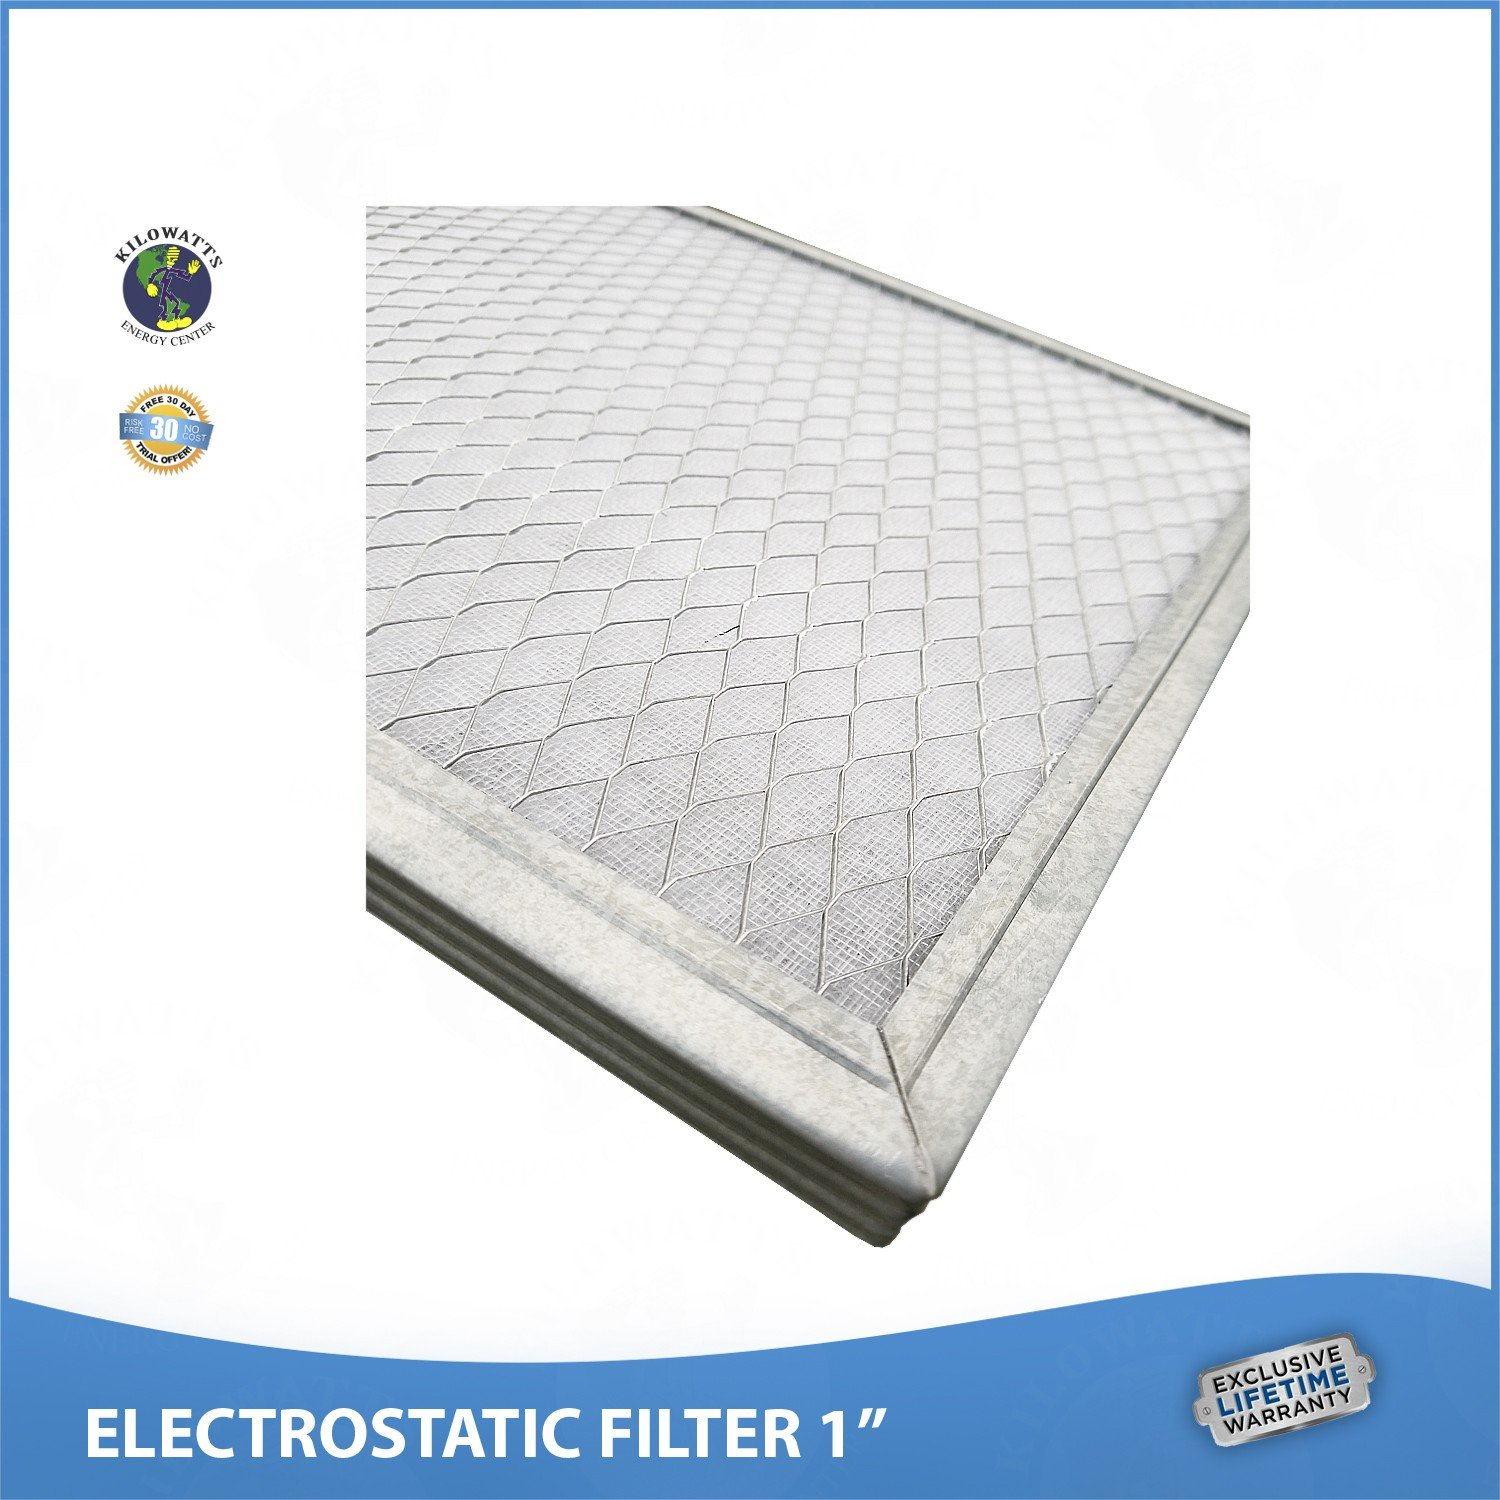 20x25x1 Lifetime Air Filter - Electrostatic Washable Permanent A/C Furnace Air Filter. by Kilowatts Energy Center (Image #4)